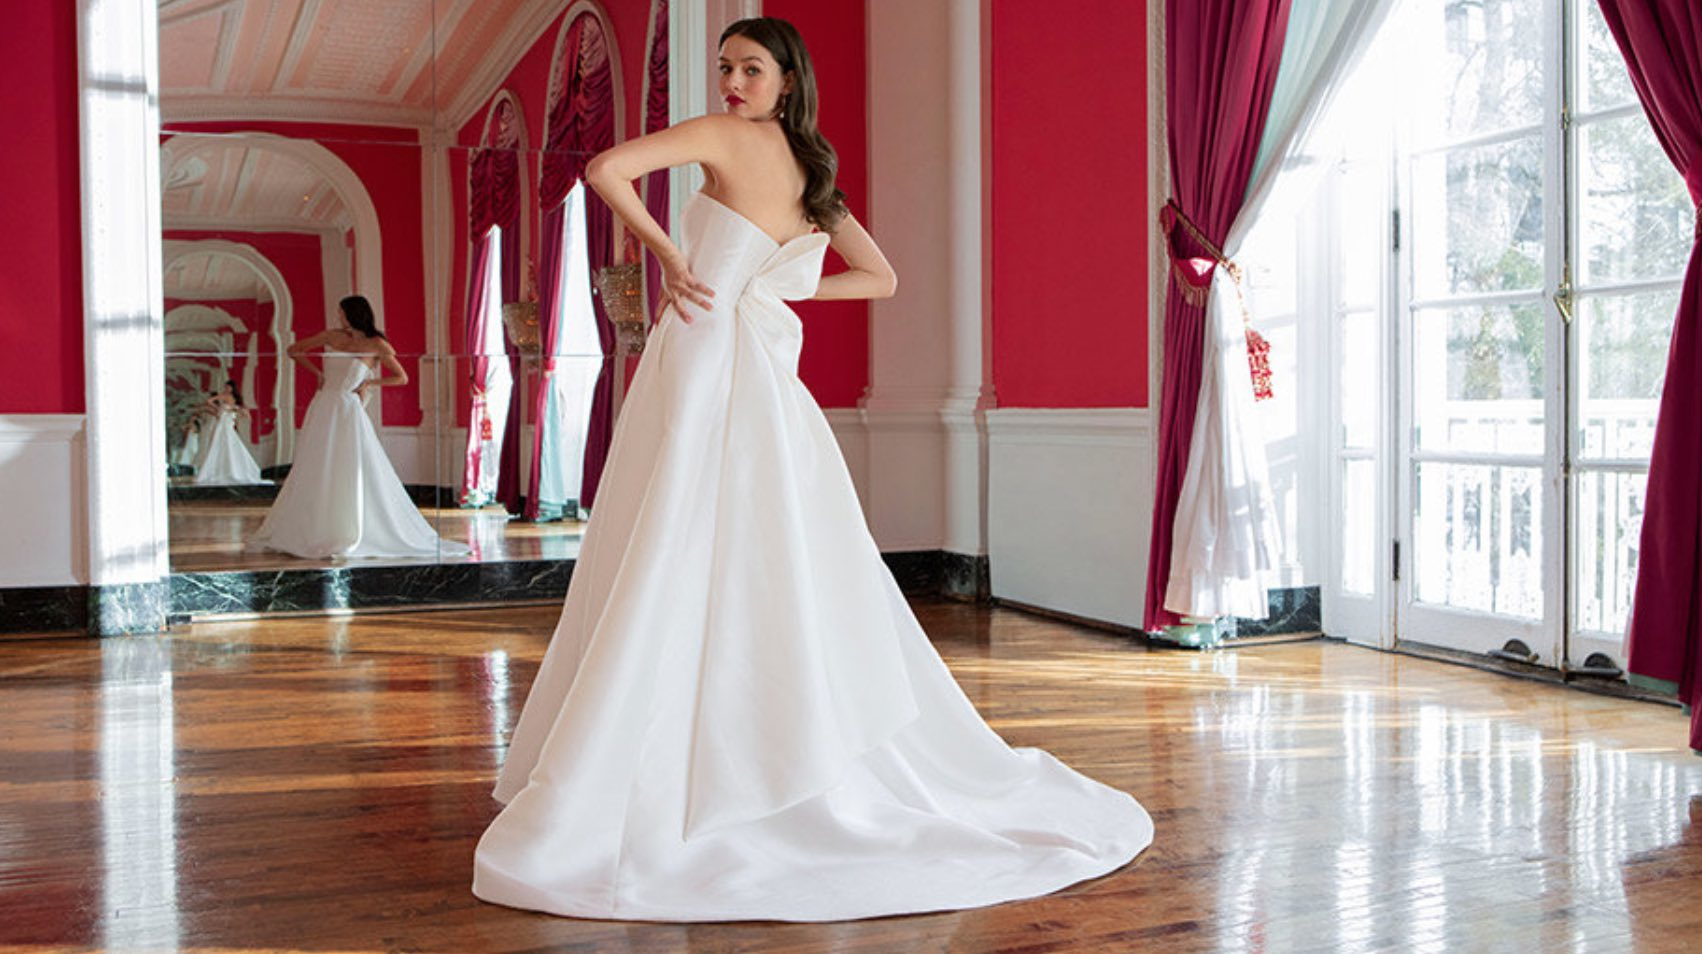 bridal dress wedding decor kitchener